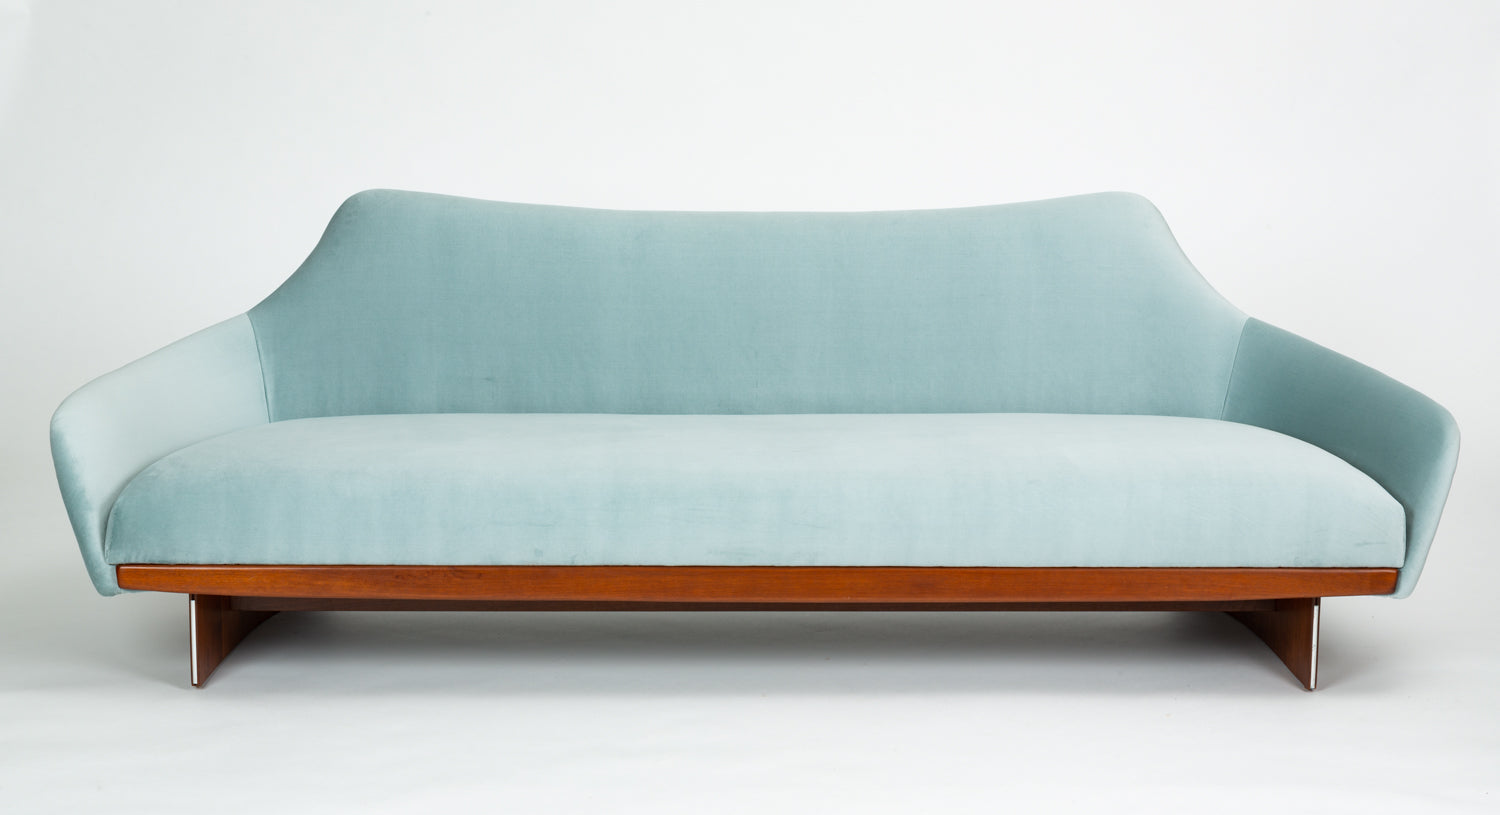 Outstanding American Made Gondola Sofa In Ice Blue Velvet With Walnut Details Pdpeps Interior Chair Design Pdpepsorg